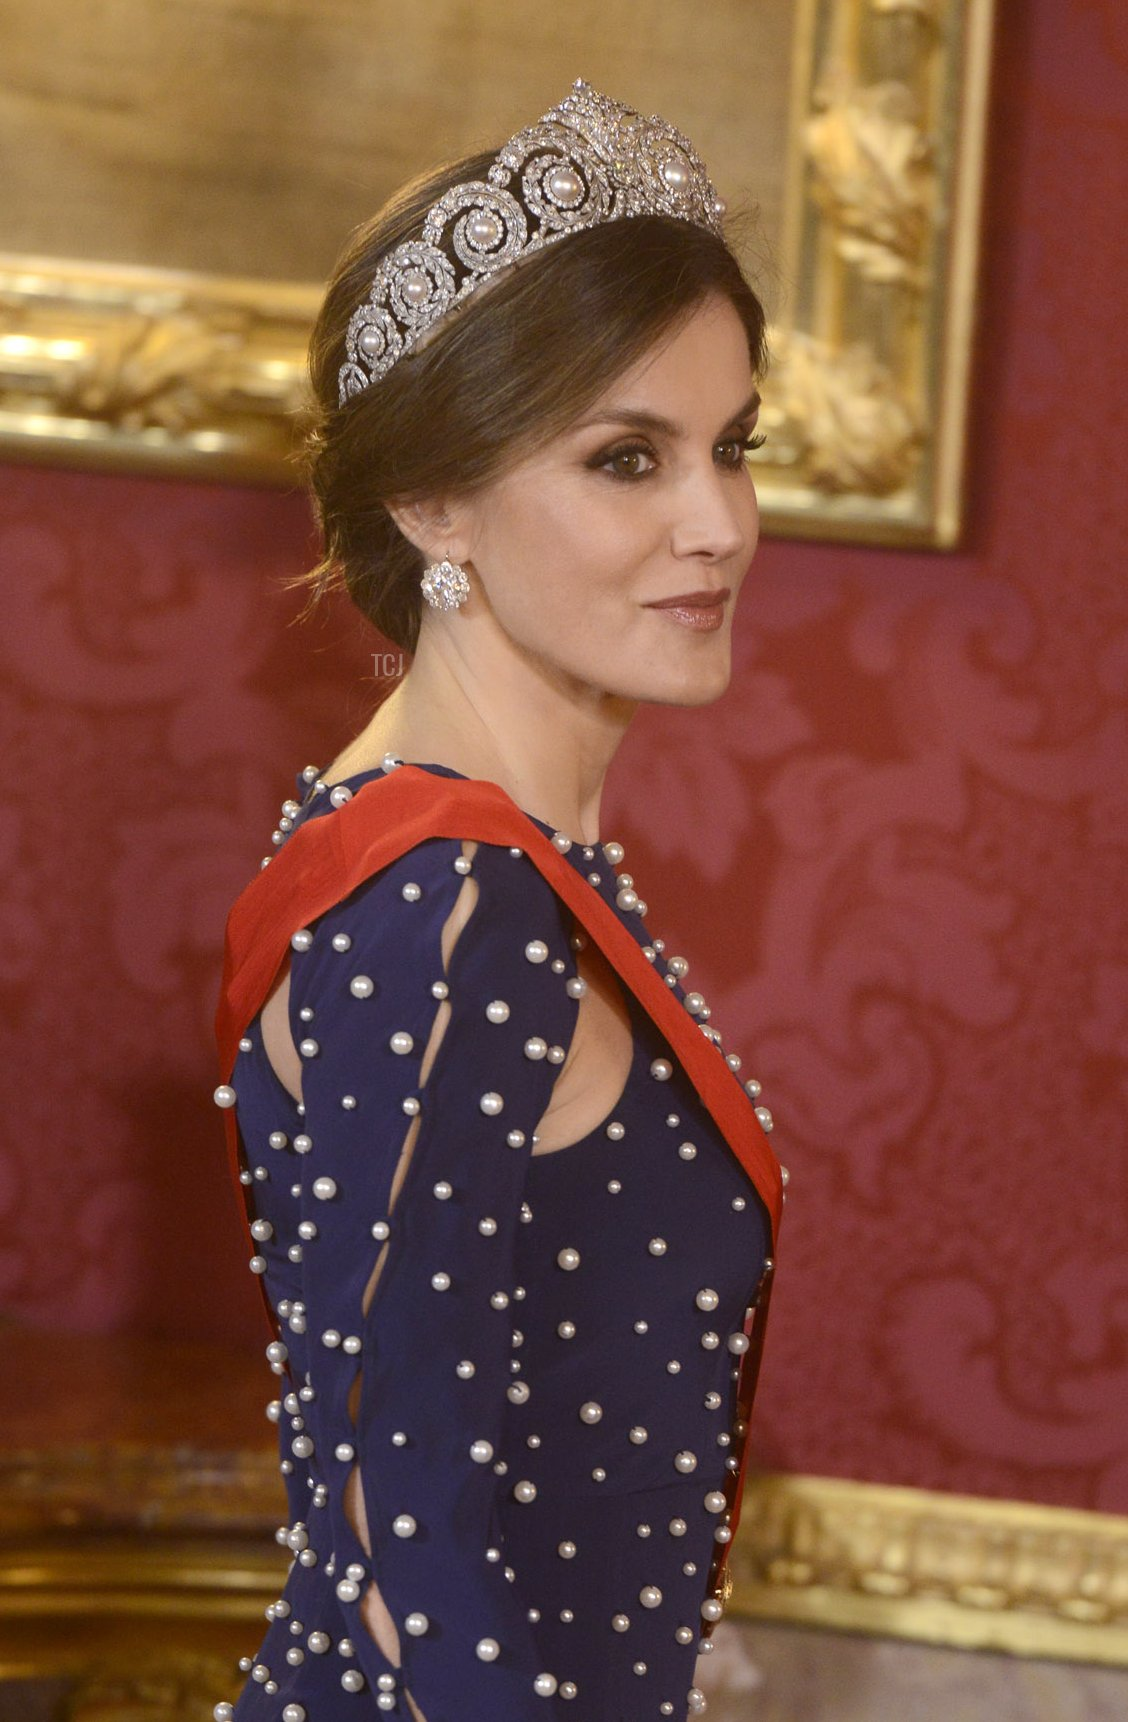 Queen Letizia of Spain hosts a dinner gala for the President of Portugal Marcelo Rebelo de Sousa at the Royal Palace on April 16, 2018 in Madrid, Spain